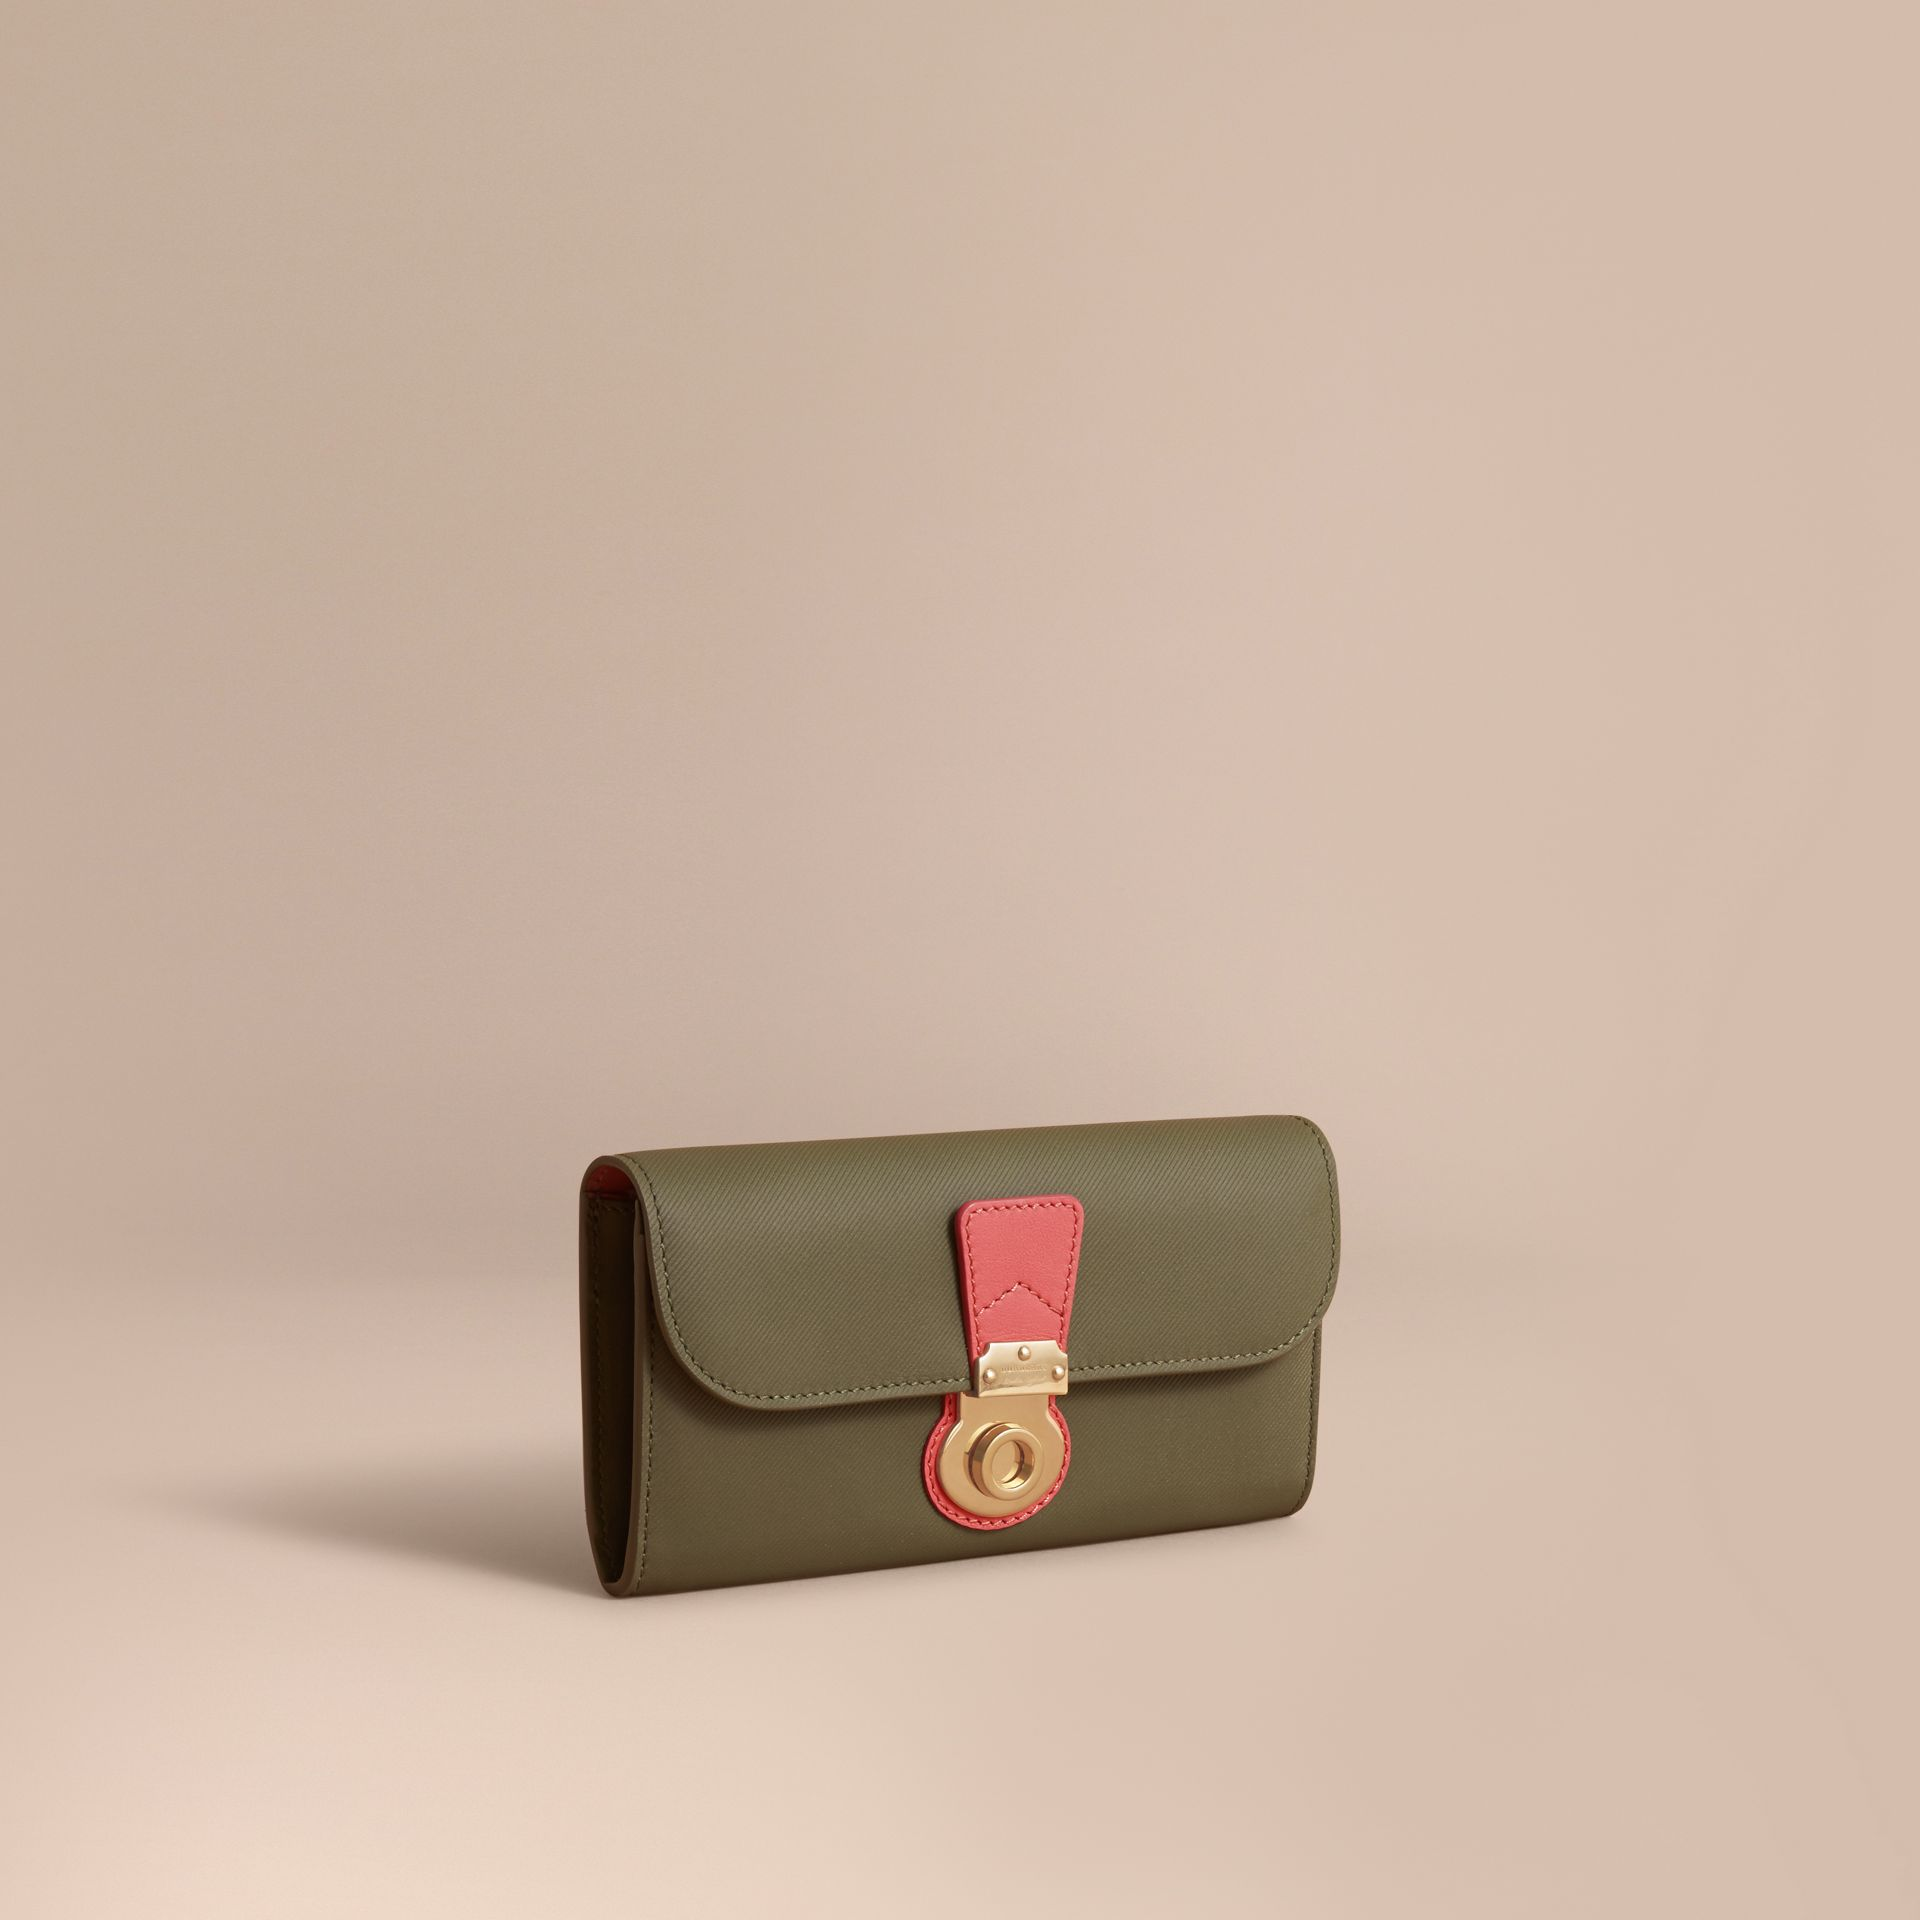 Two-tone Trench Leather Continental Wallet in Moss Green/ Blossom Pink - Women | Burberry Australia - gallery image 1